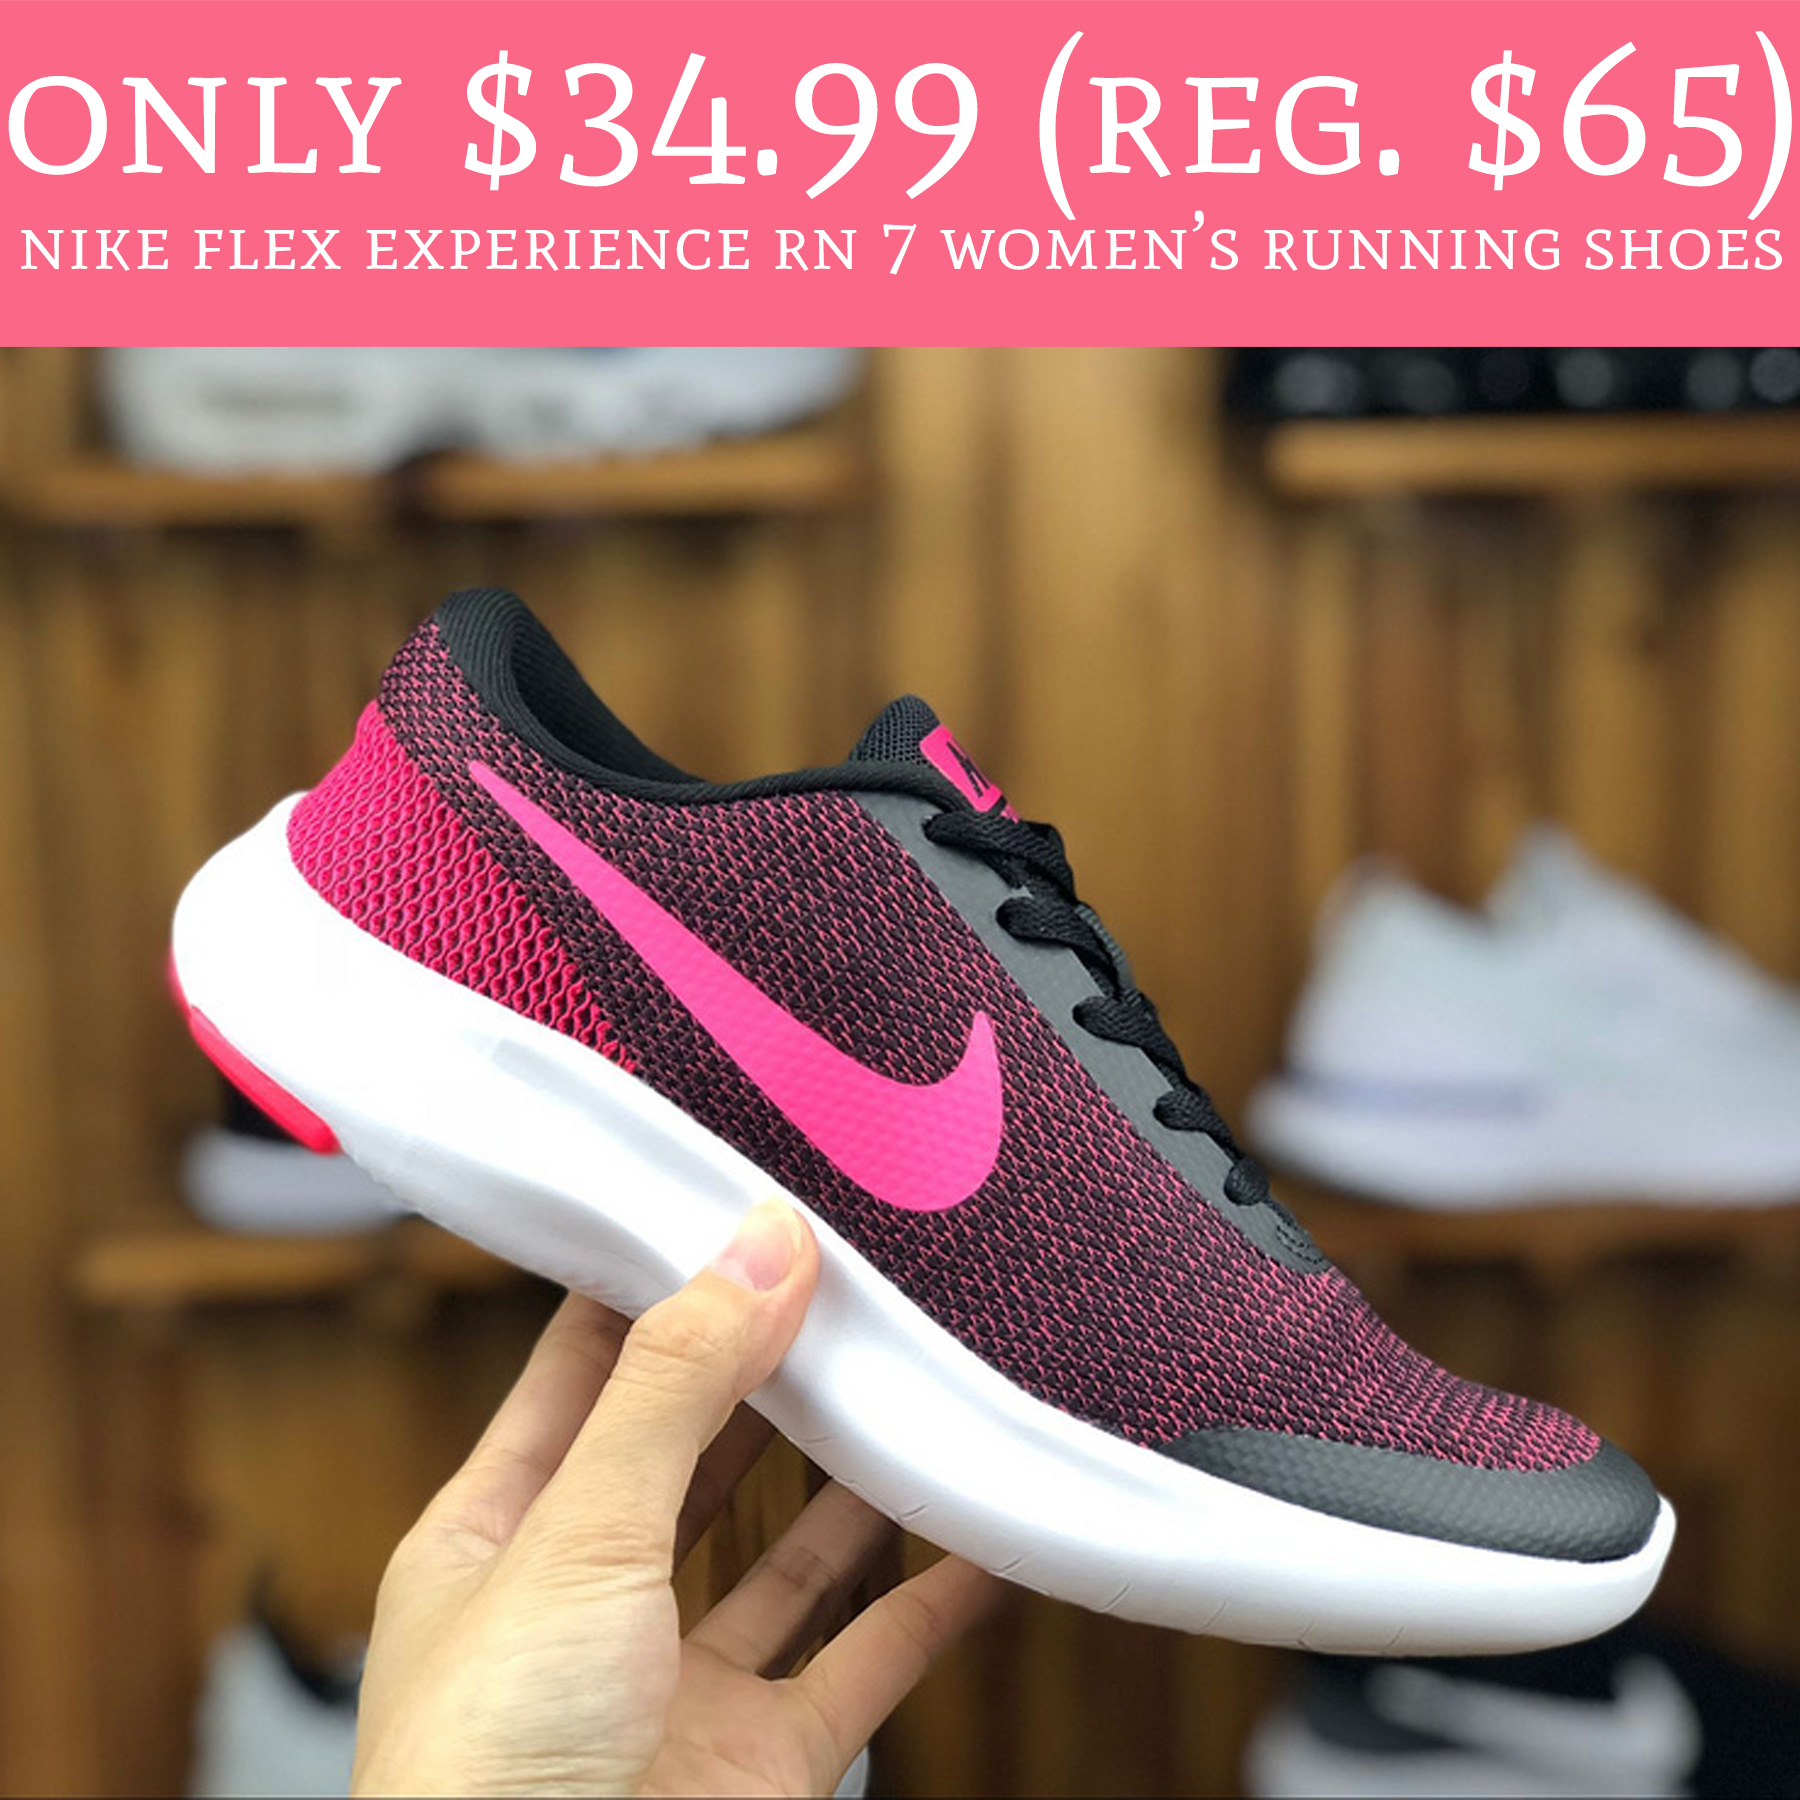 5f05365584d Great price on Nikes!! RUN to Kohl s.com where you can purchase Nike Flex  Experience RN 7 Women s Running Shoes ...